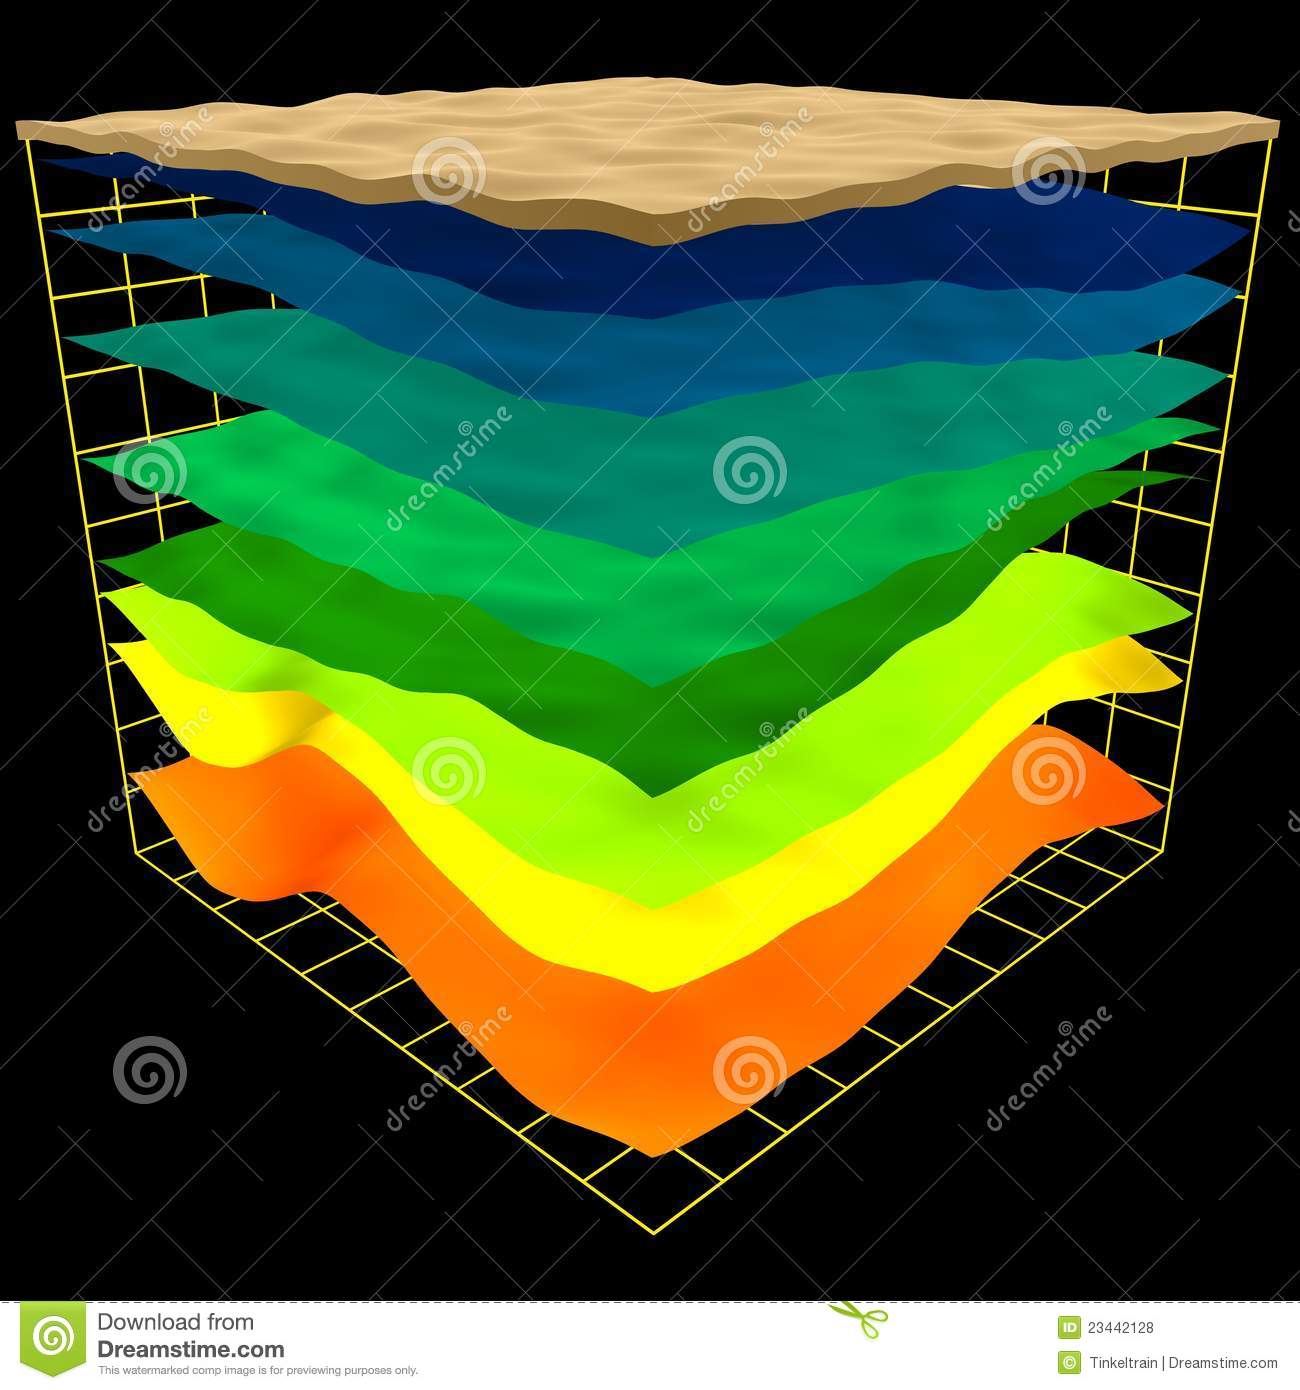 layers of the earth diagram diagramming sentences games abstract geology scheme royalty free stock photos - image: 23442128